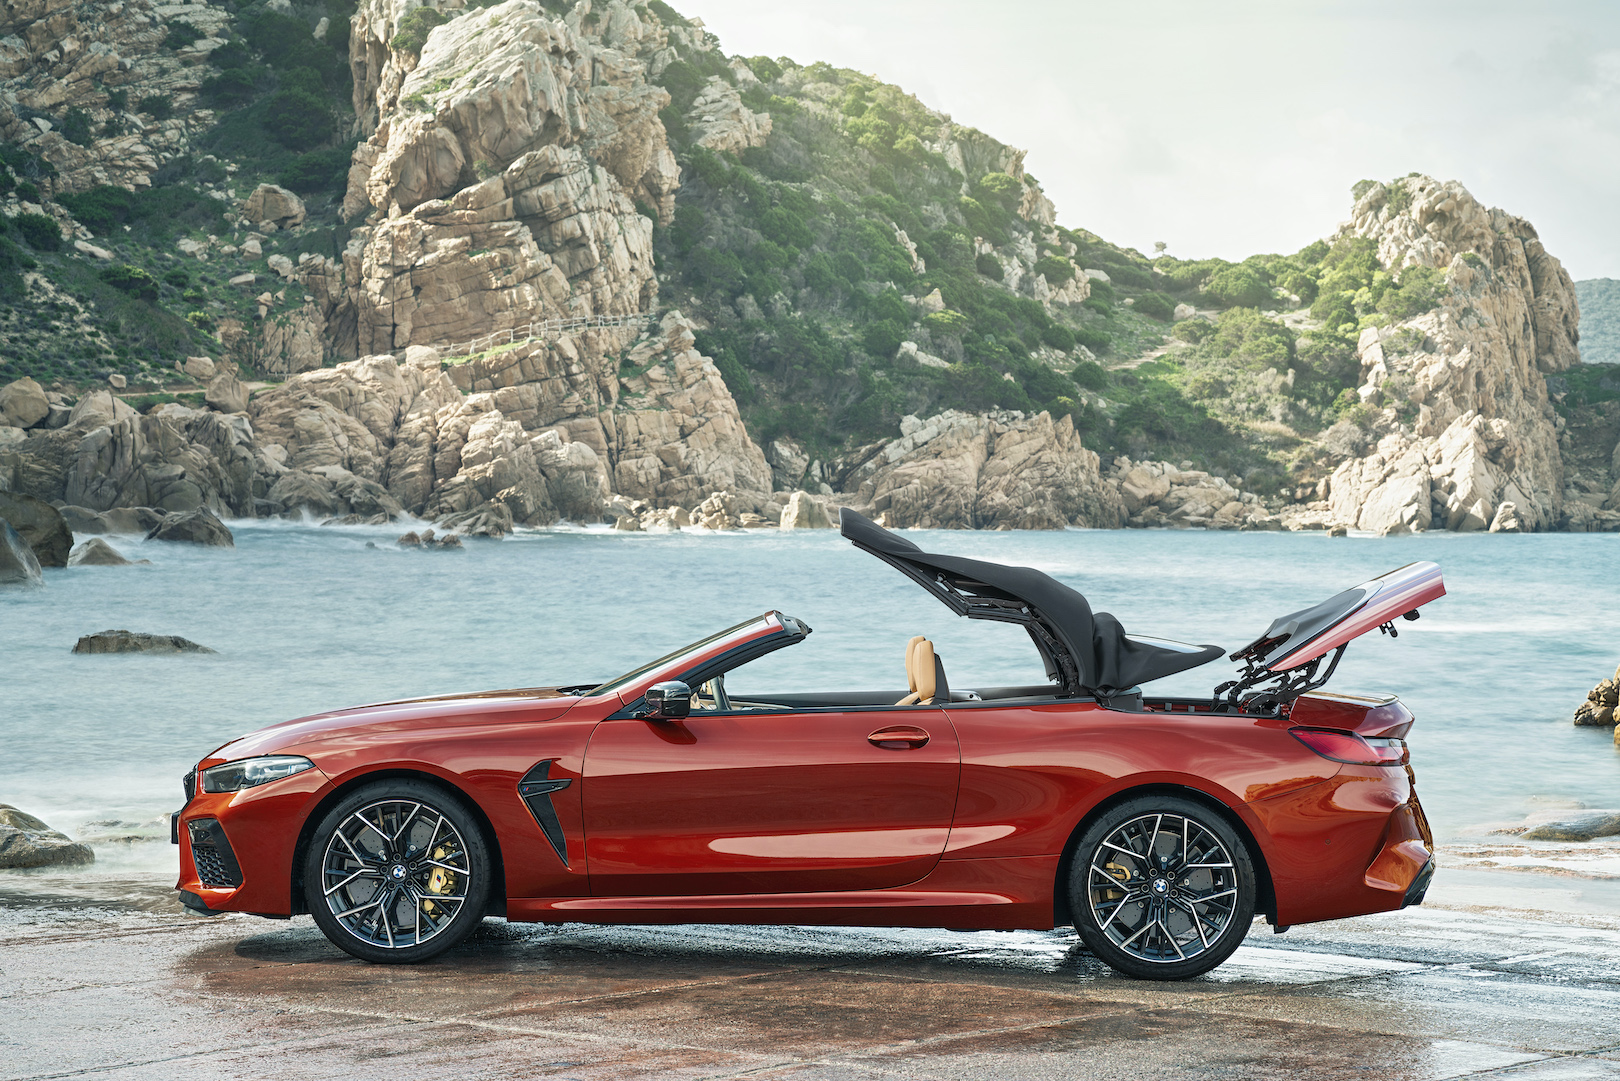 2020 Bmw M8 Convertible Most Powerful Letter In The World M Automotive Rhythms